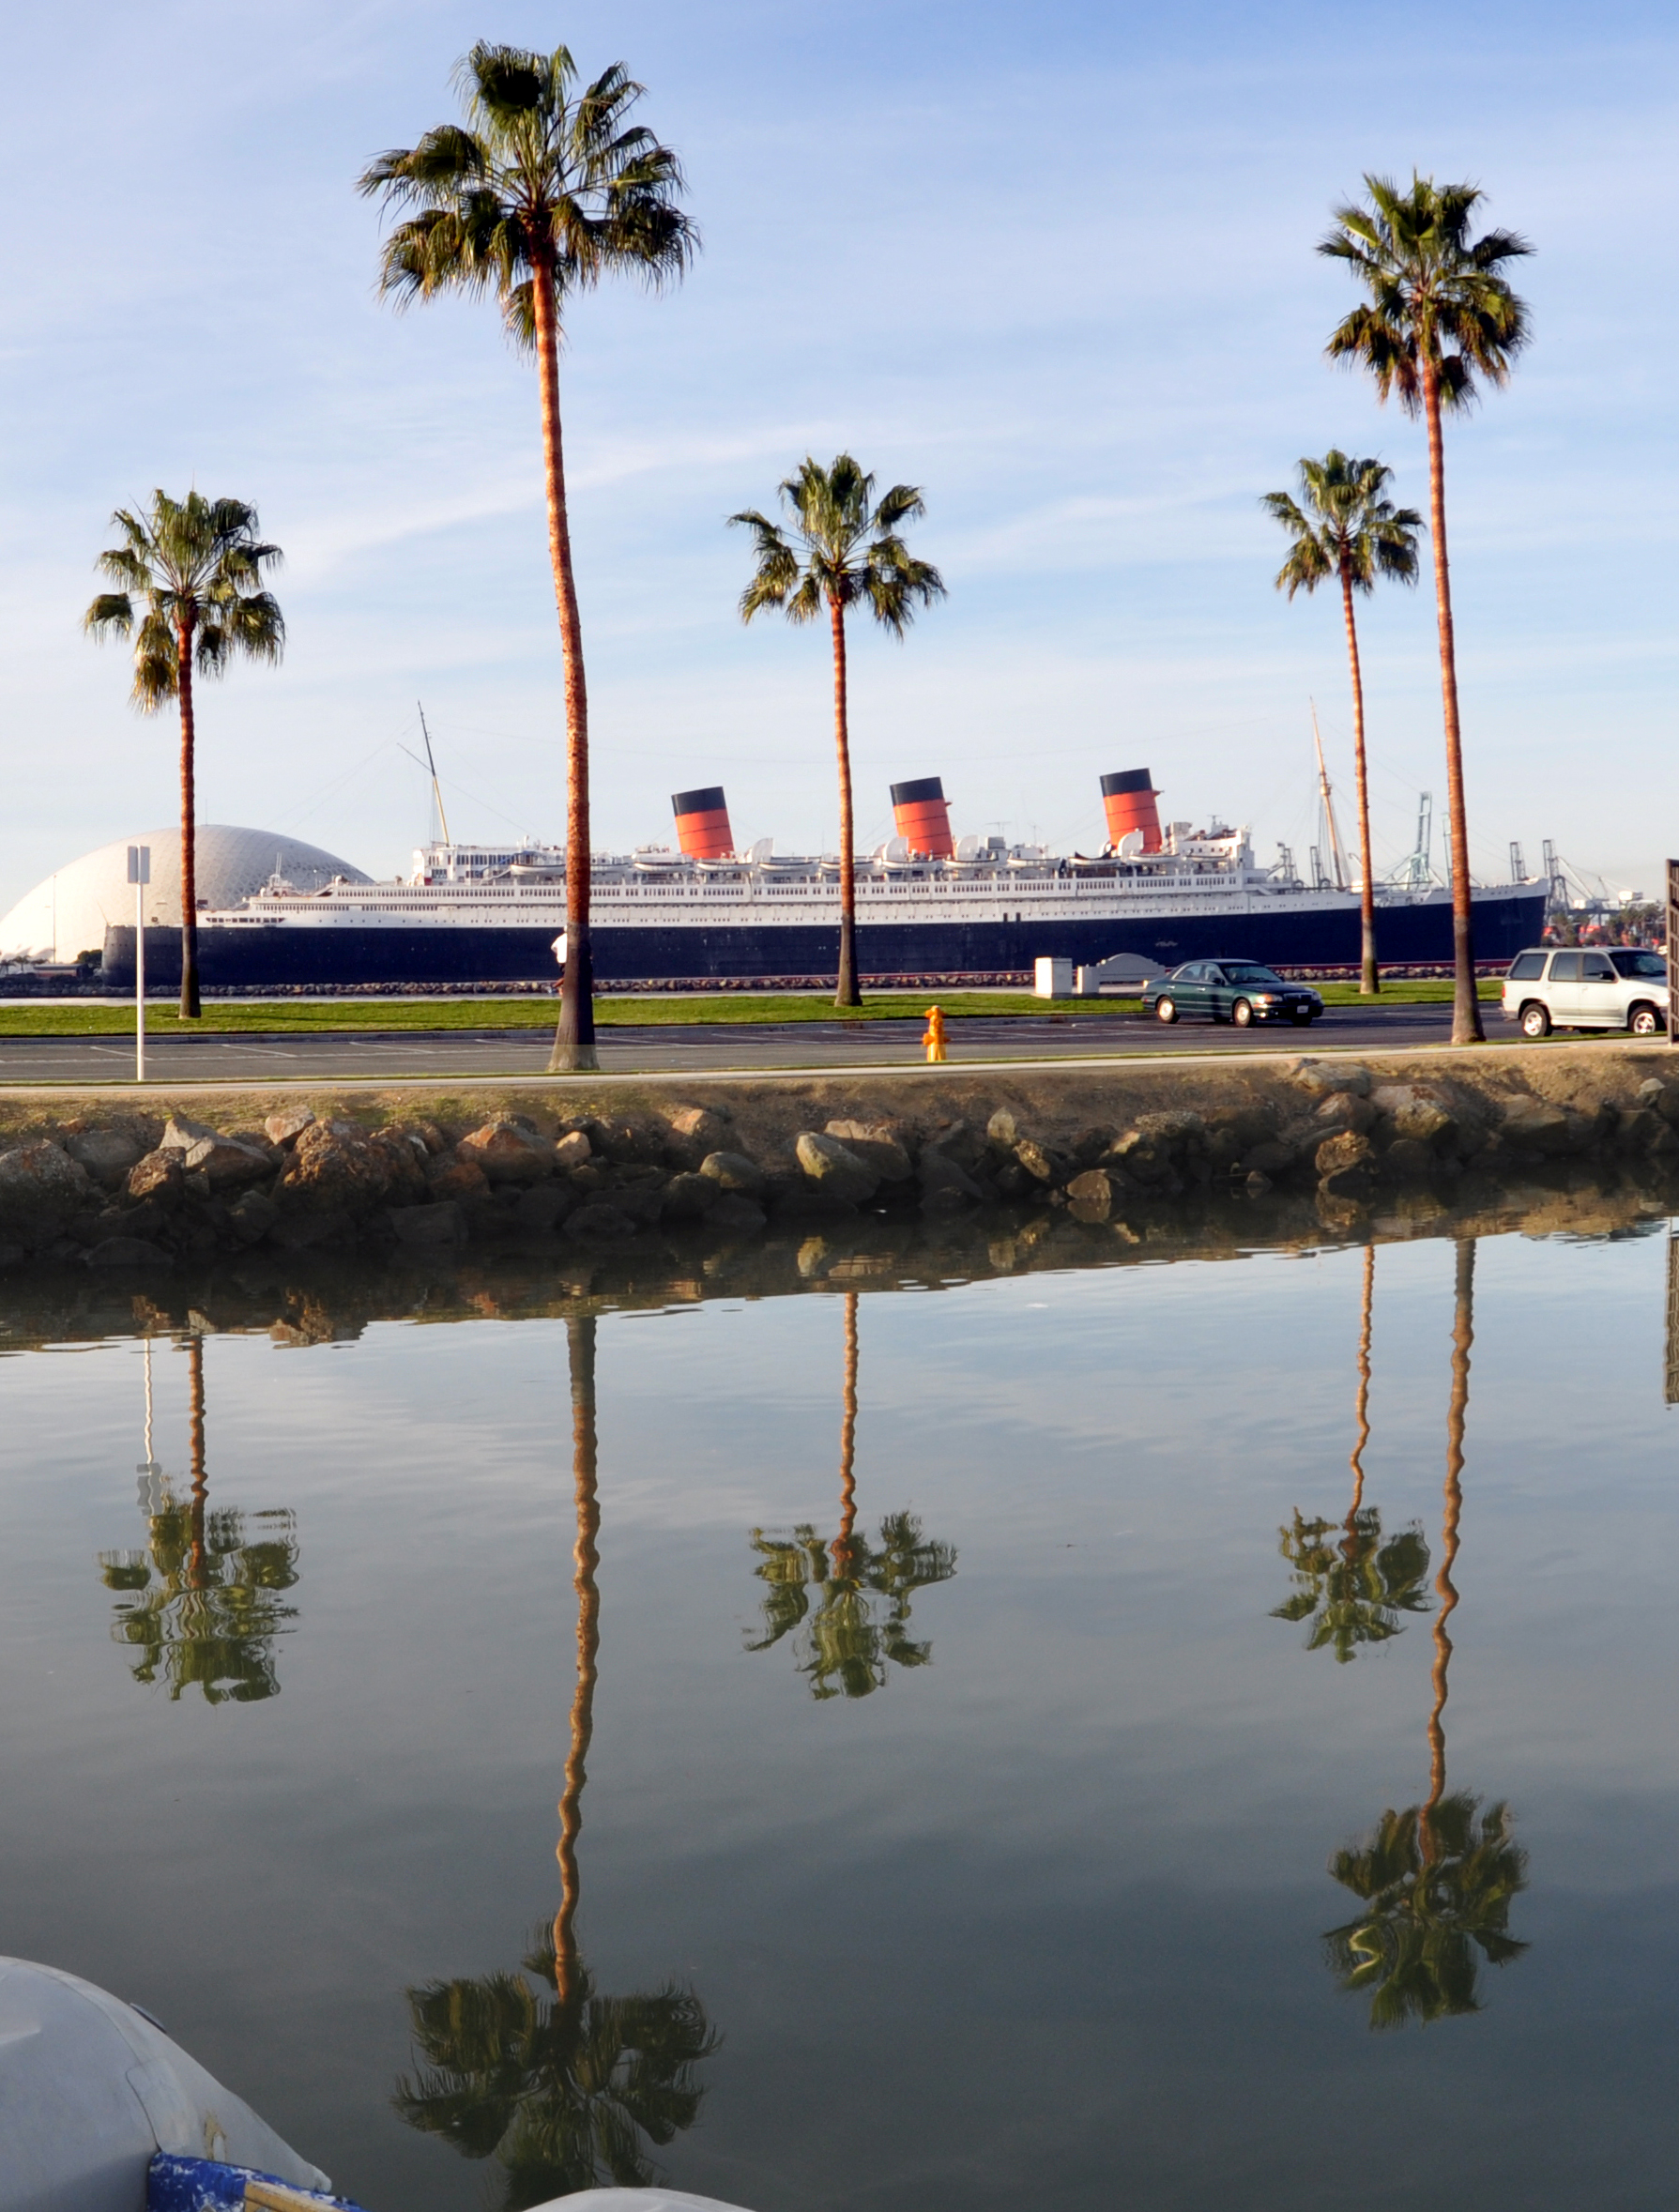 RMS Queen Mary in Long Beach Harbor